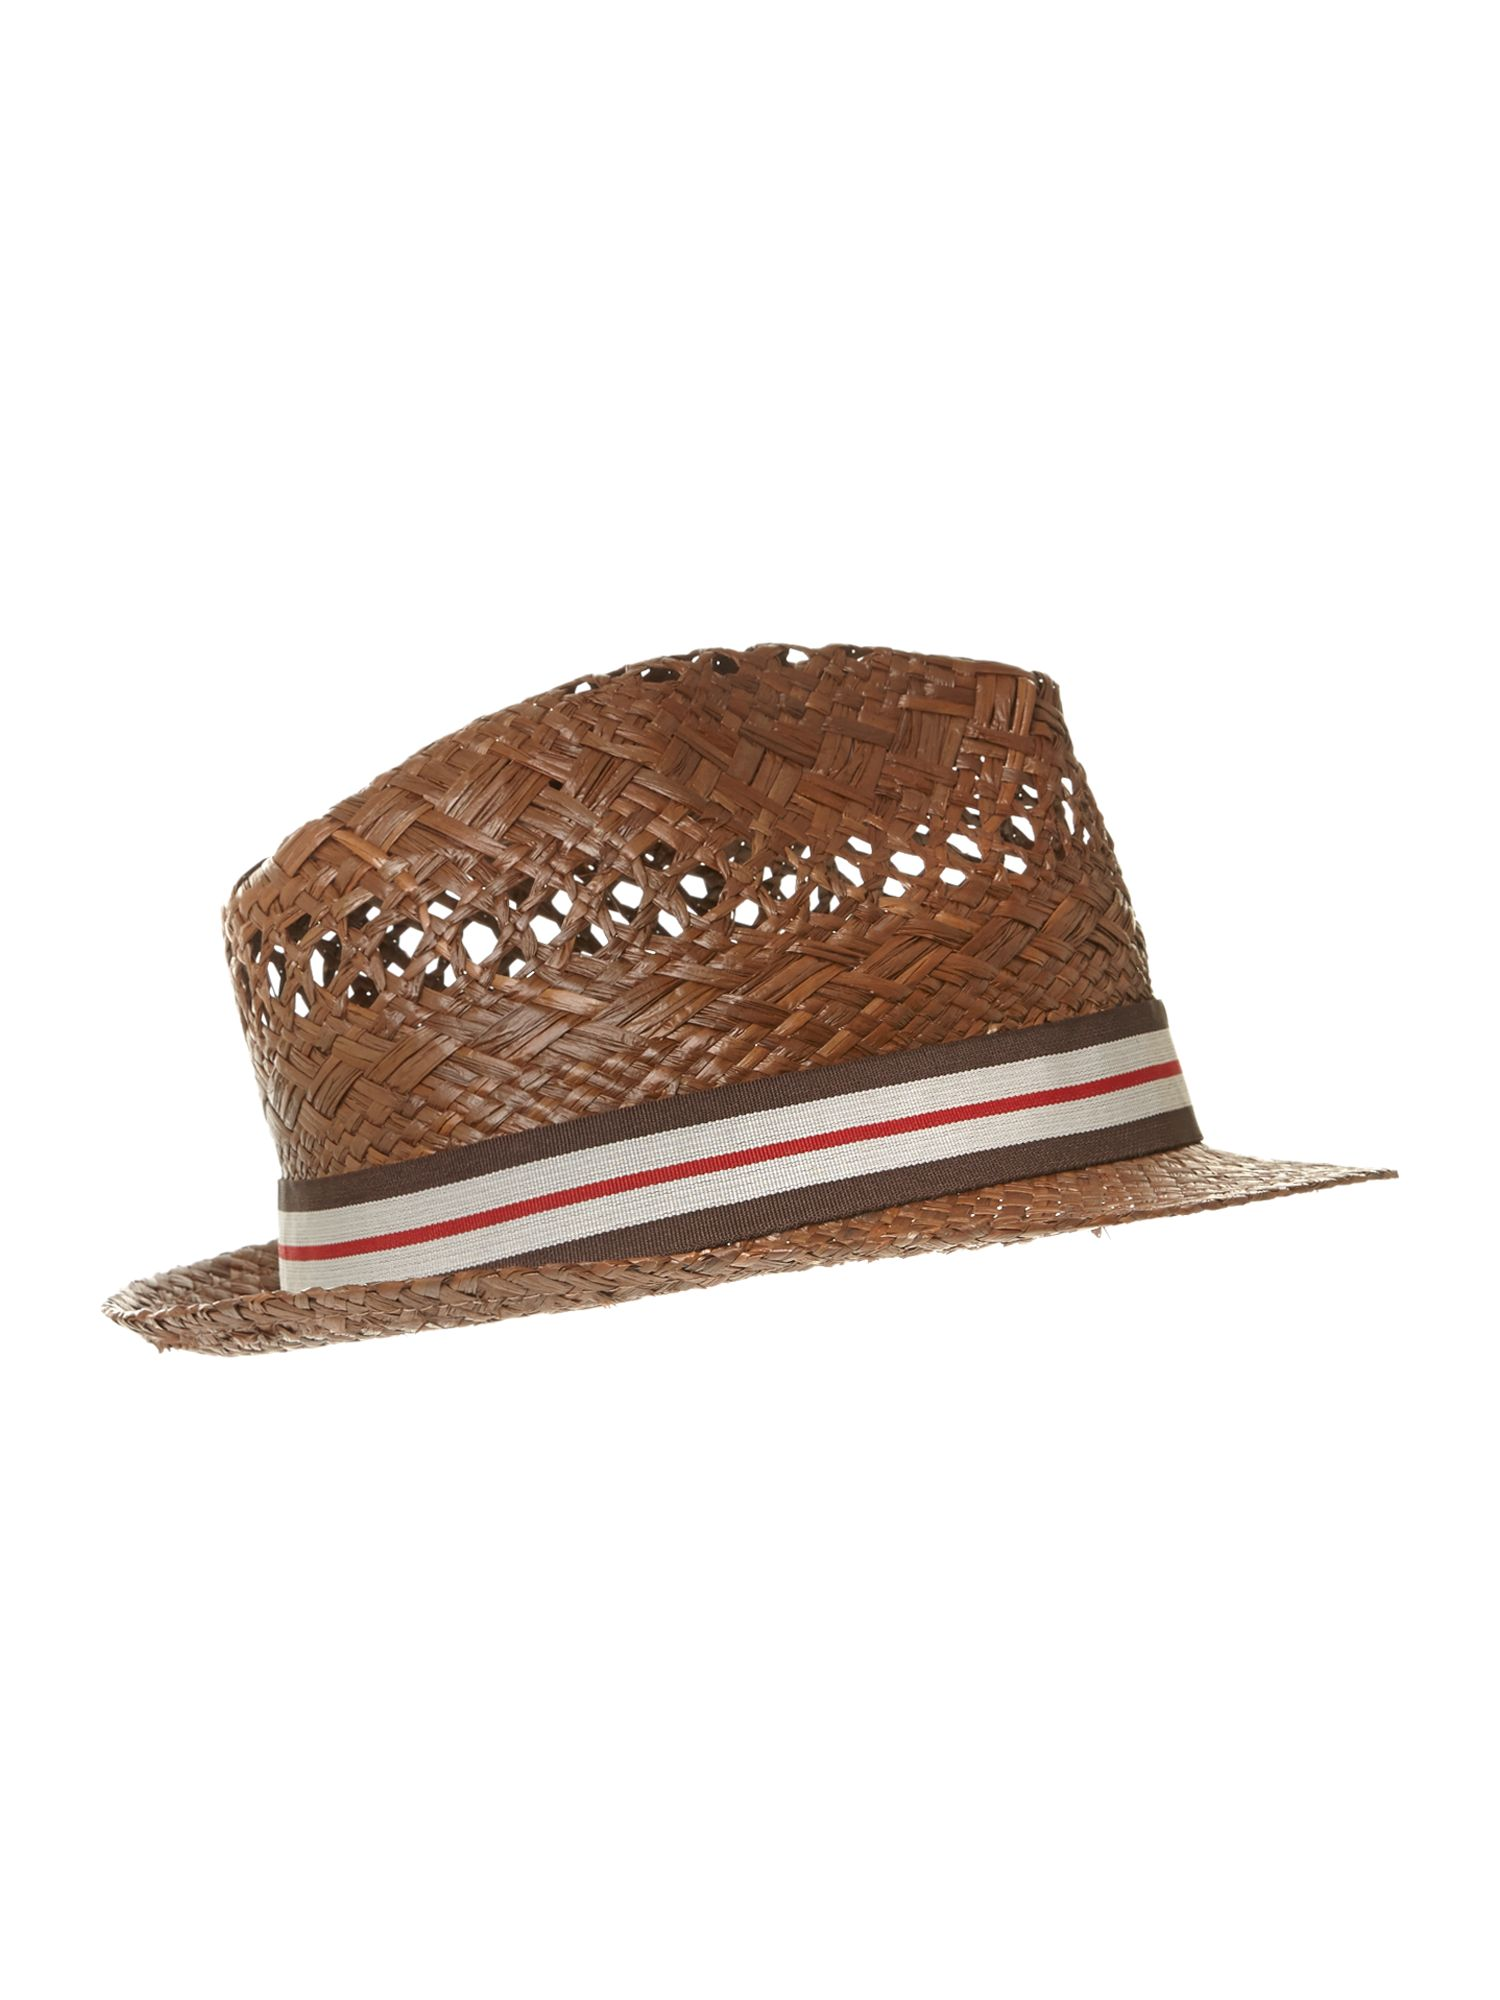 New weave straw hat